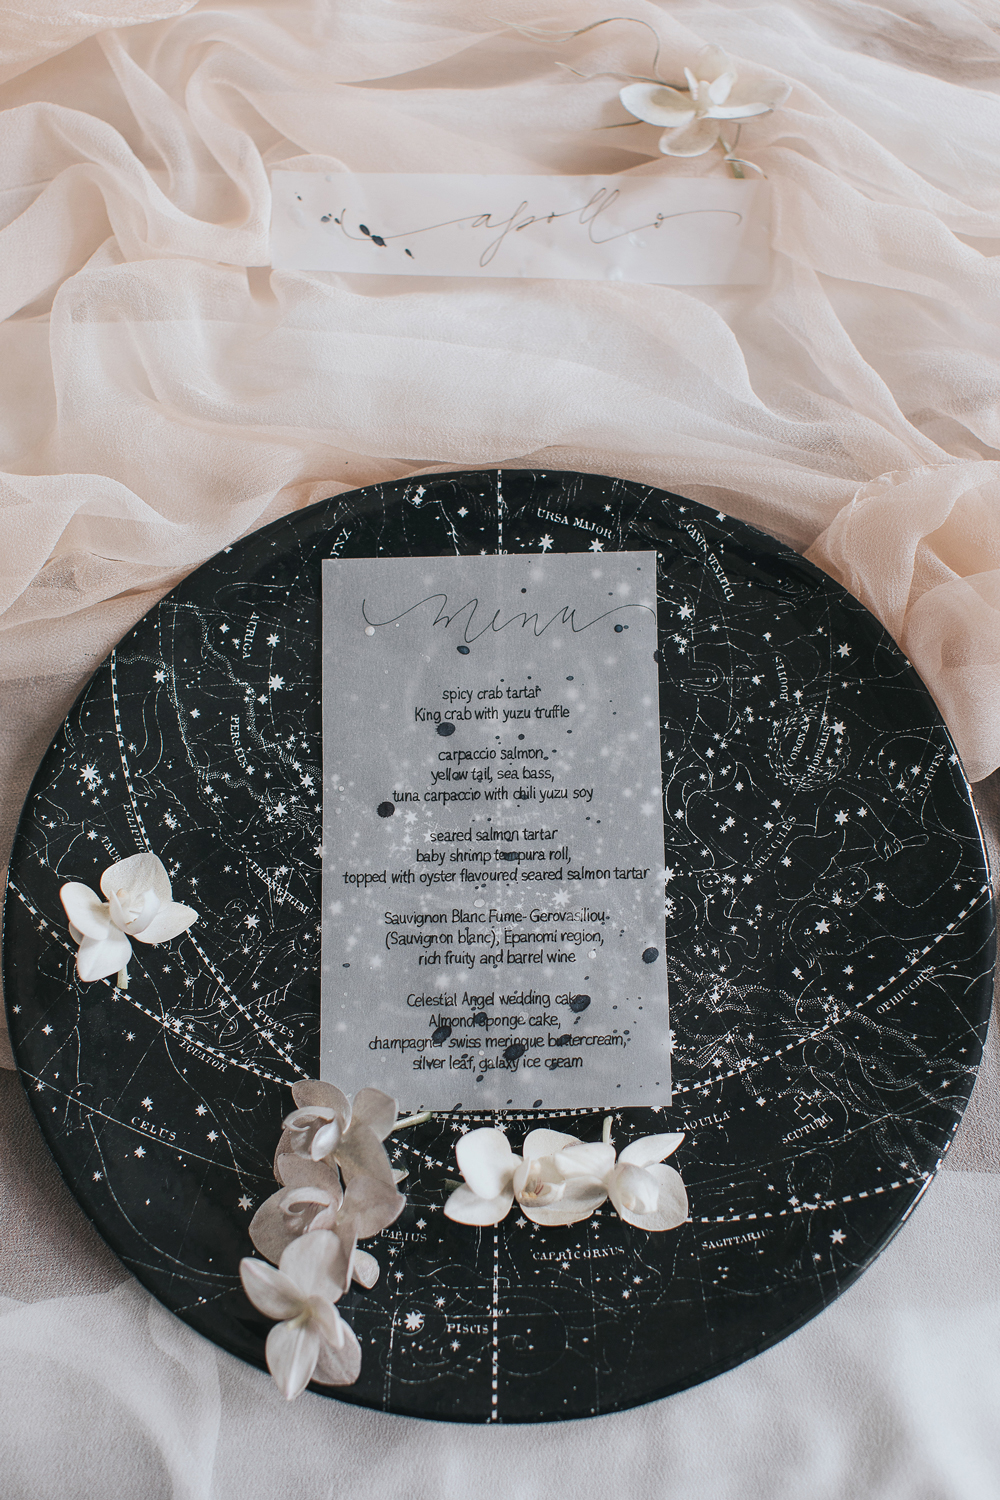 vellum menu with decorative plate